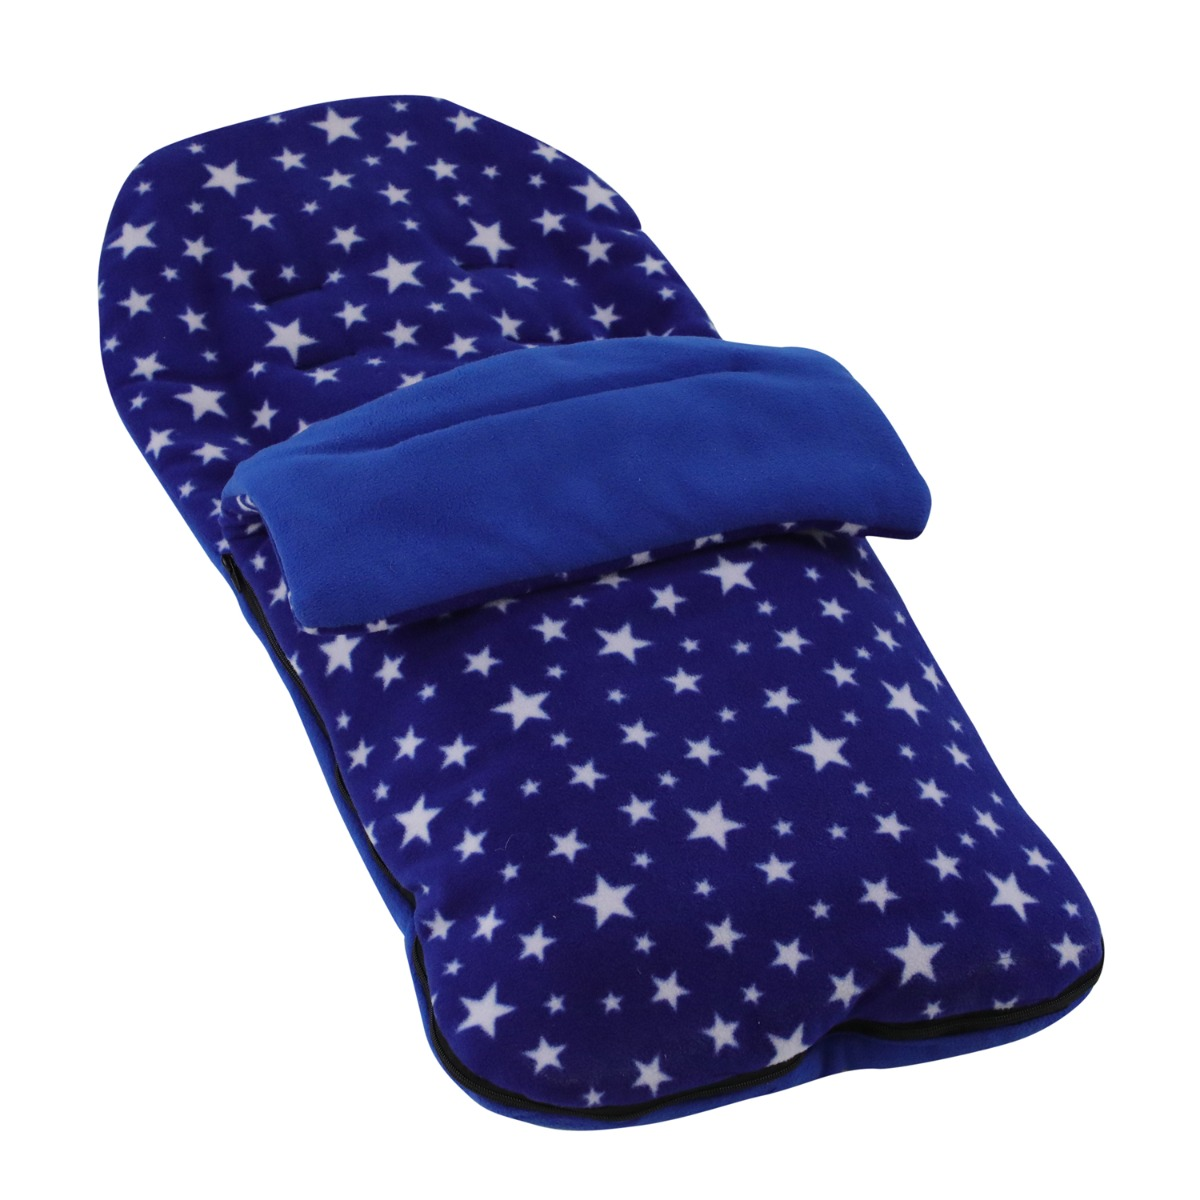 Universal-Fleece-Pushchair-Footmuff-Cosy-Toes-Fits-All-Pushchairs-Prams thumbnail 8